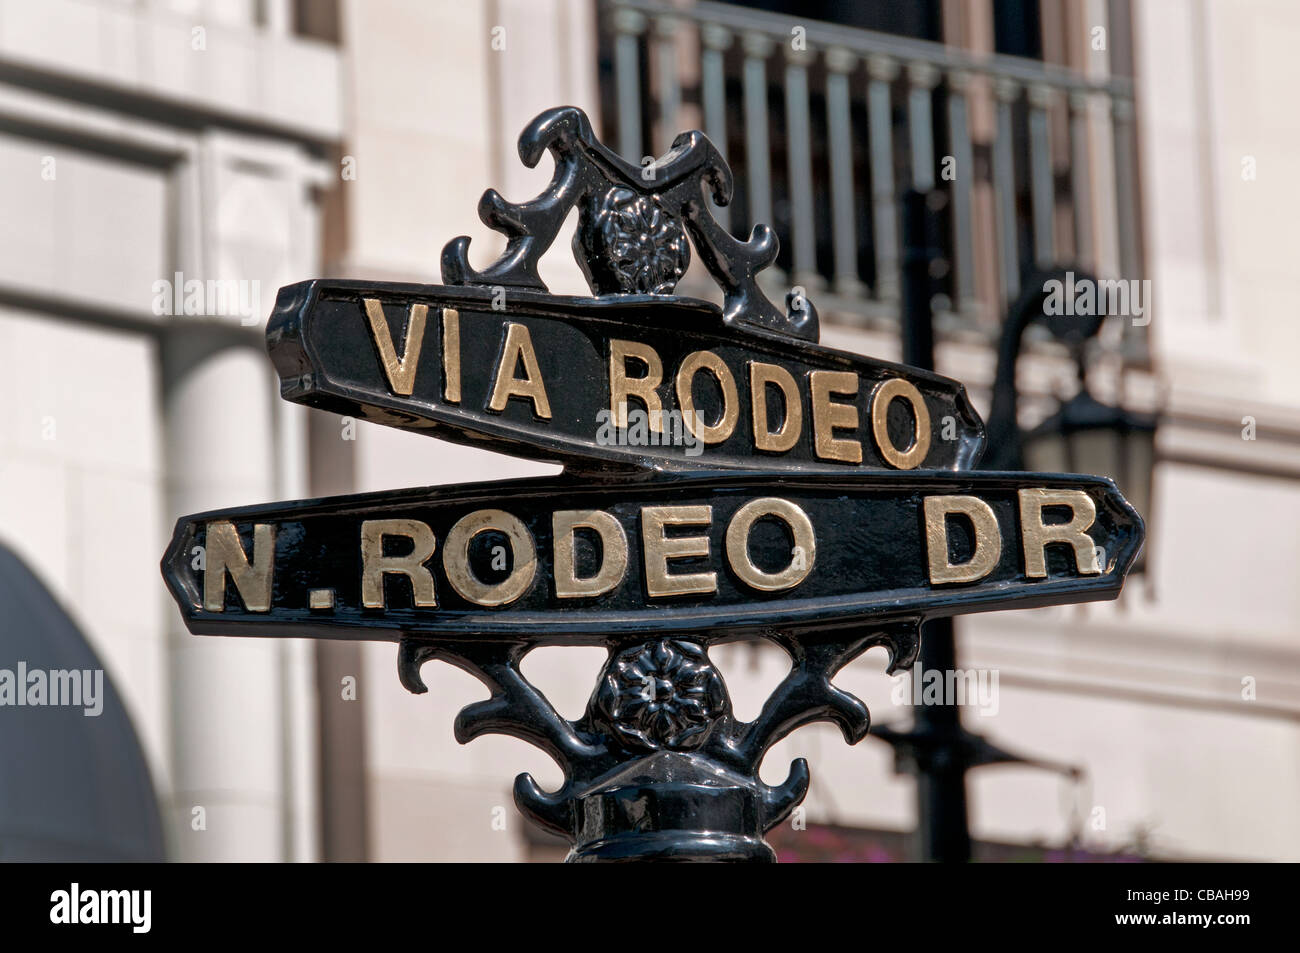 Via Rodeo Drive boutiques shops Beverly Hills Los Angeles California United States - Stock Image